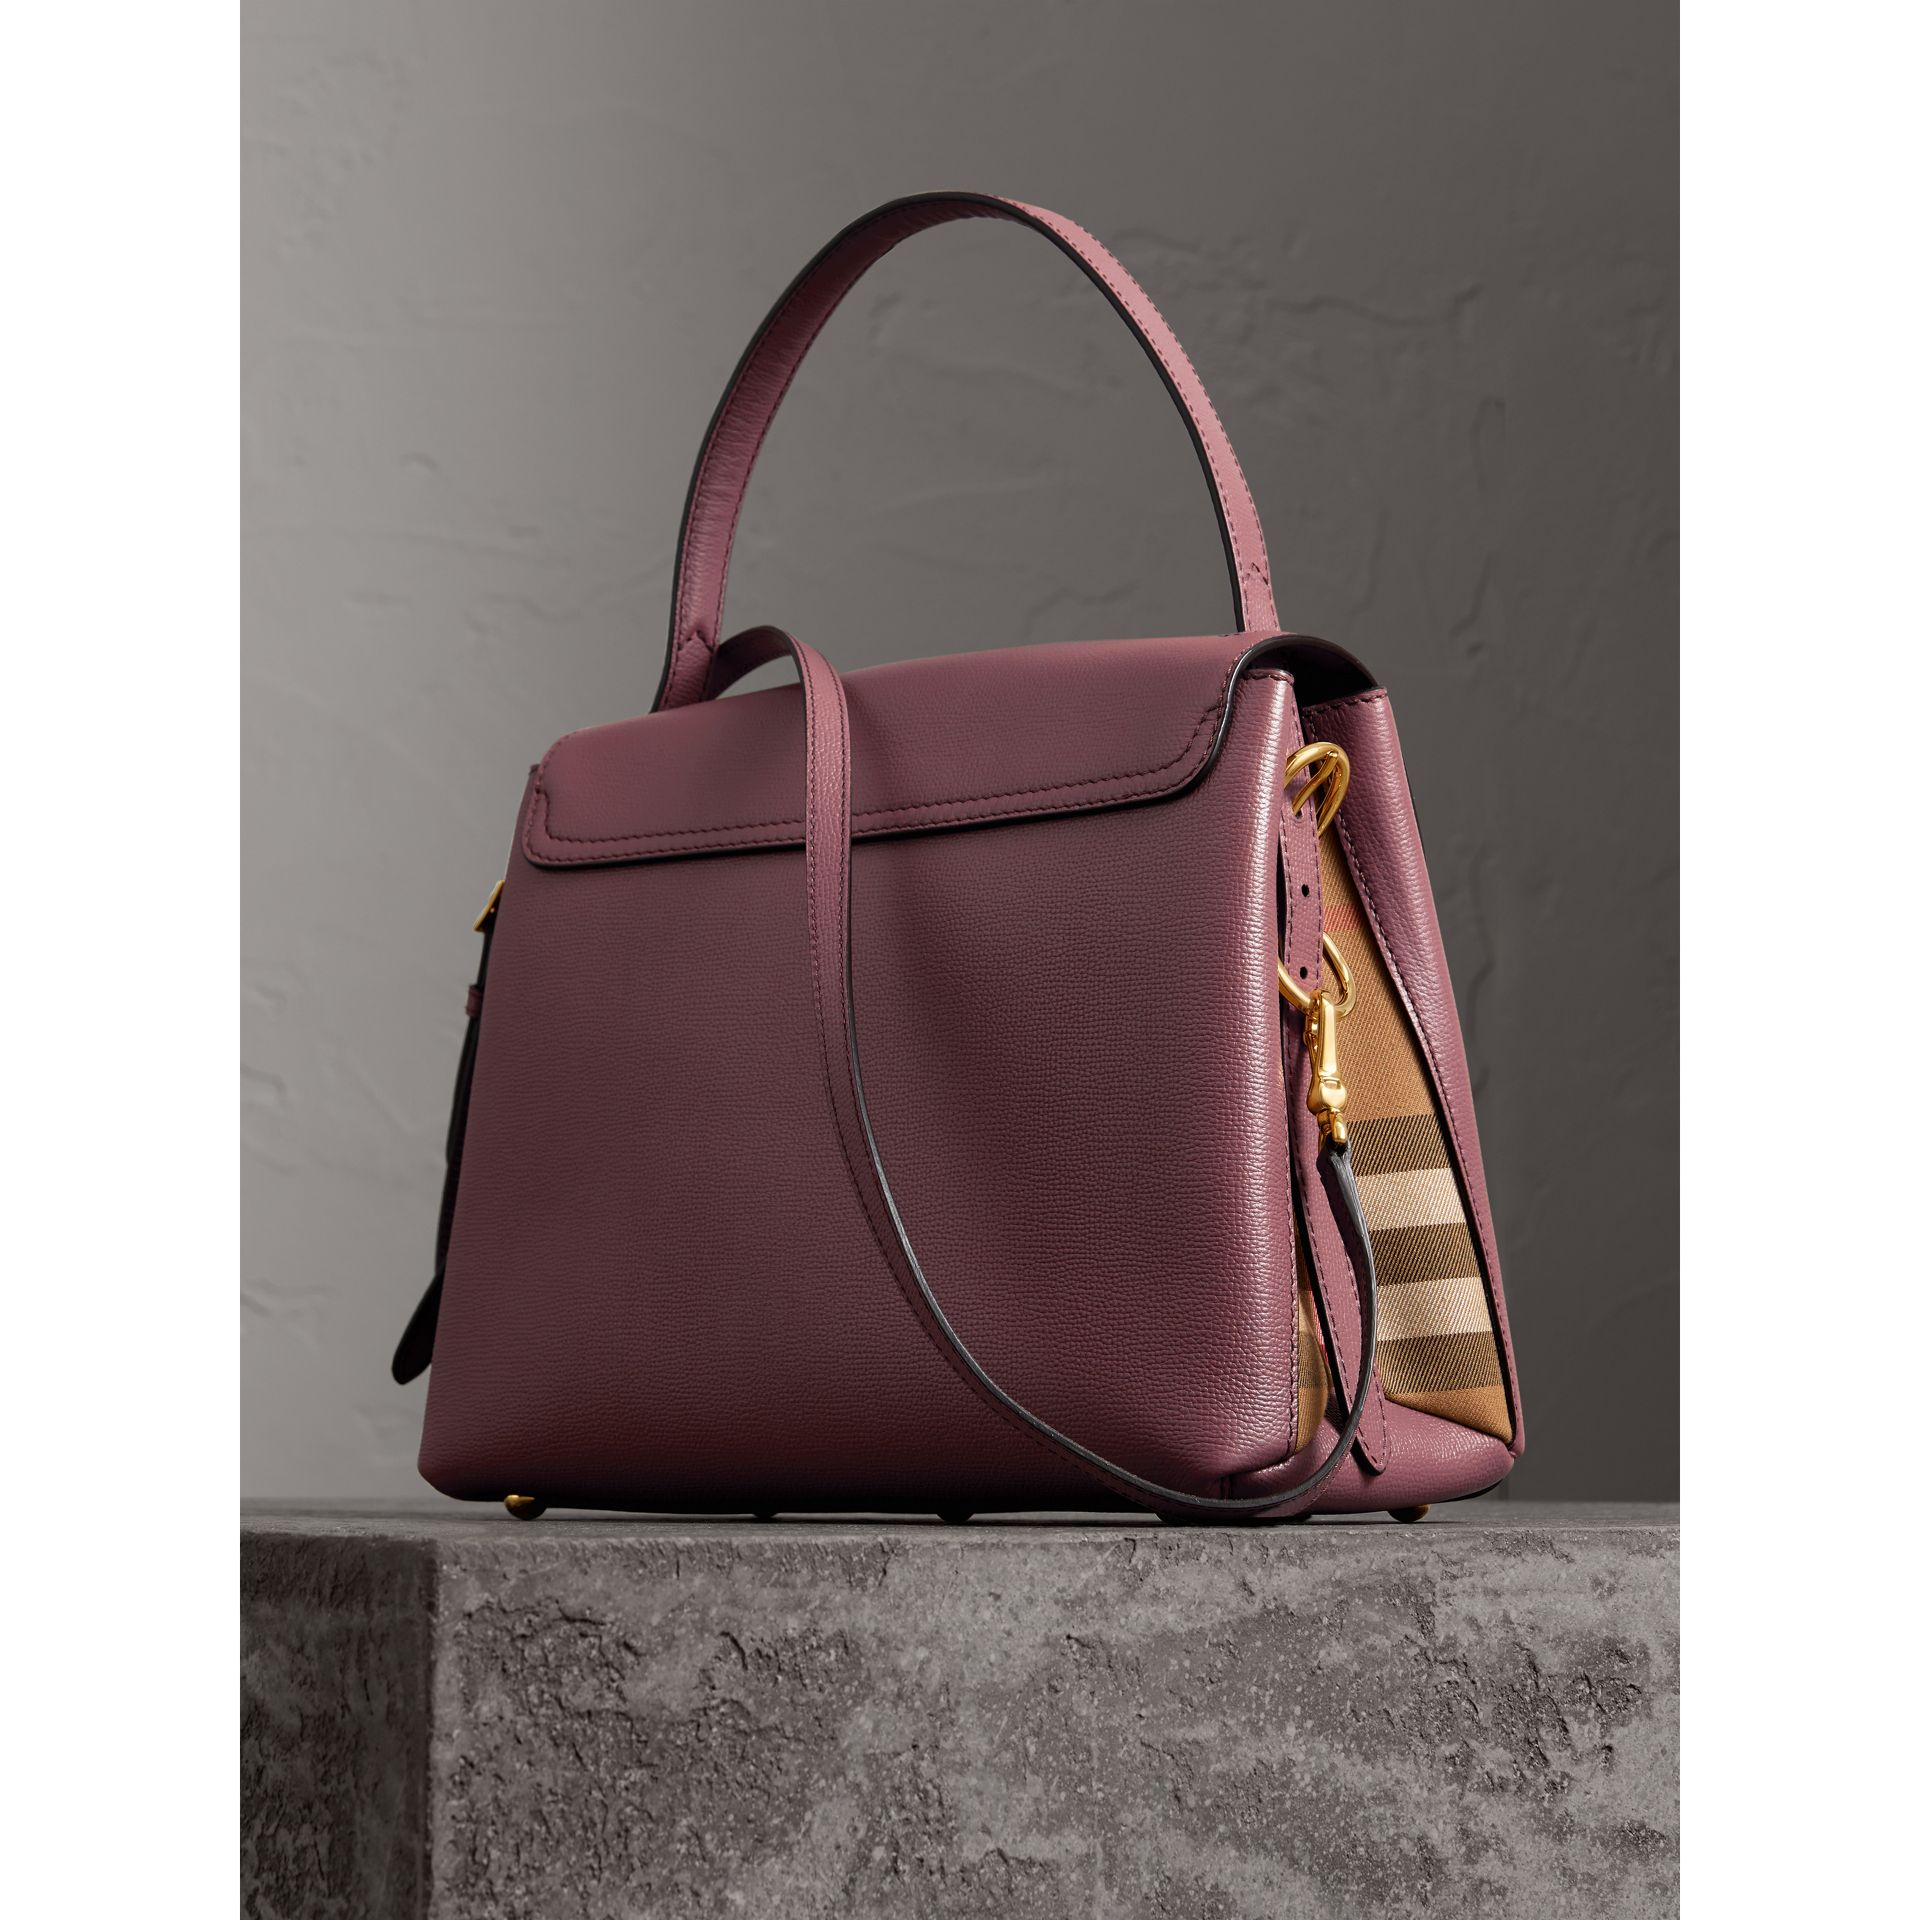 Medium Grainy Leather and House Check Tote Bag in Mahogany Red - Women | Burberry Australia - gallery image 4